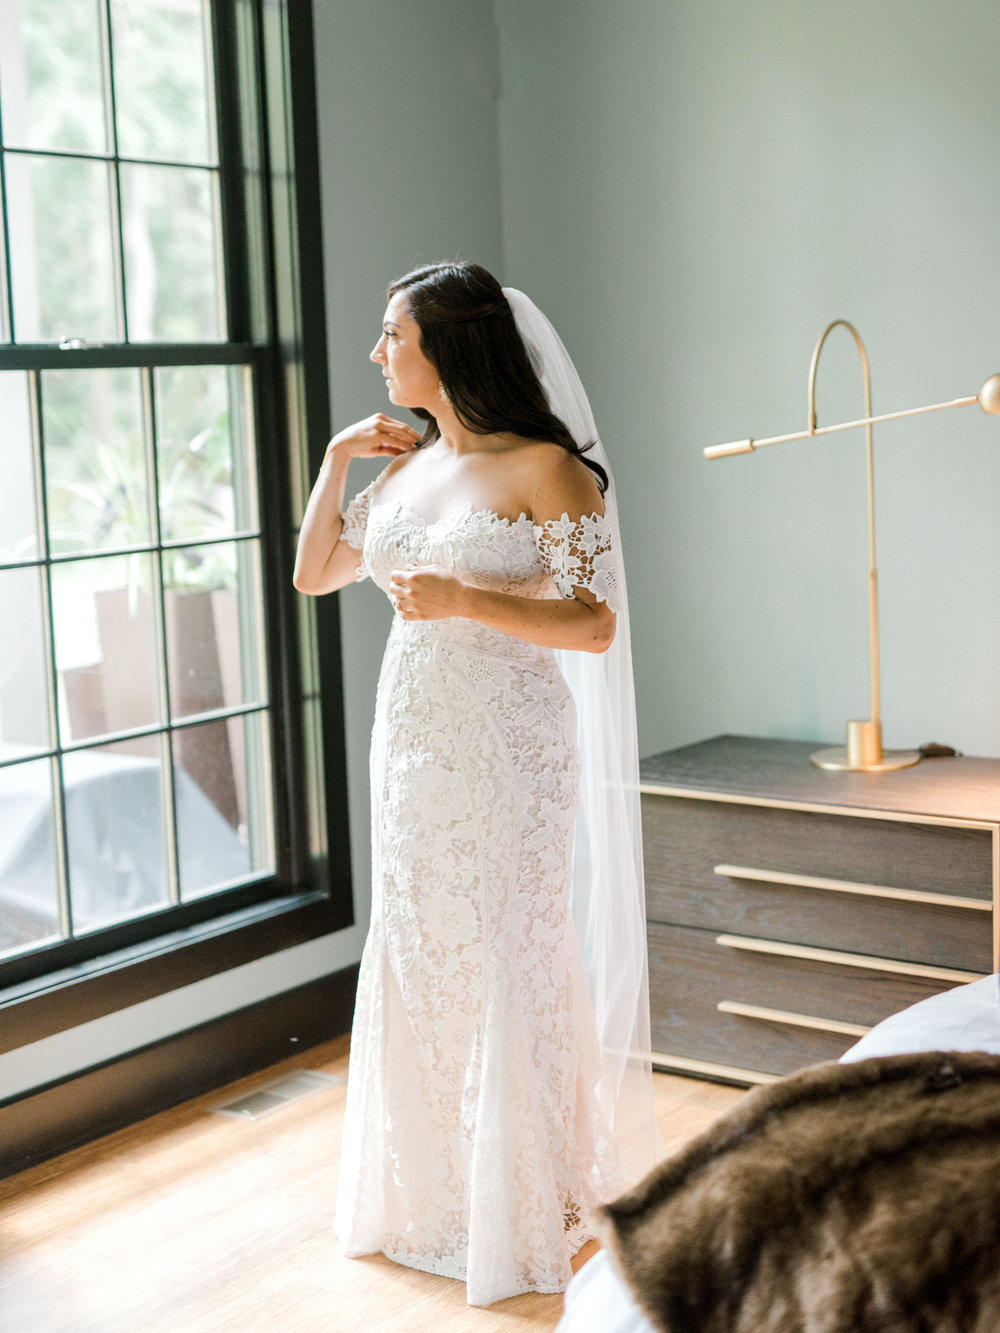 We absolutely adore Lindsay's classic lace Lover's Society gown and how it complemented her modern wedding day at Hotel du Village.